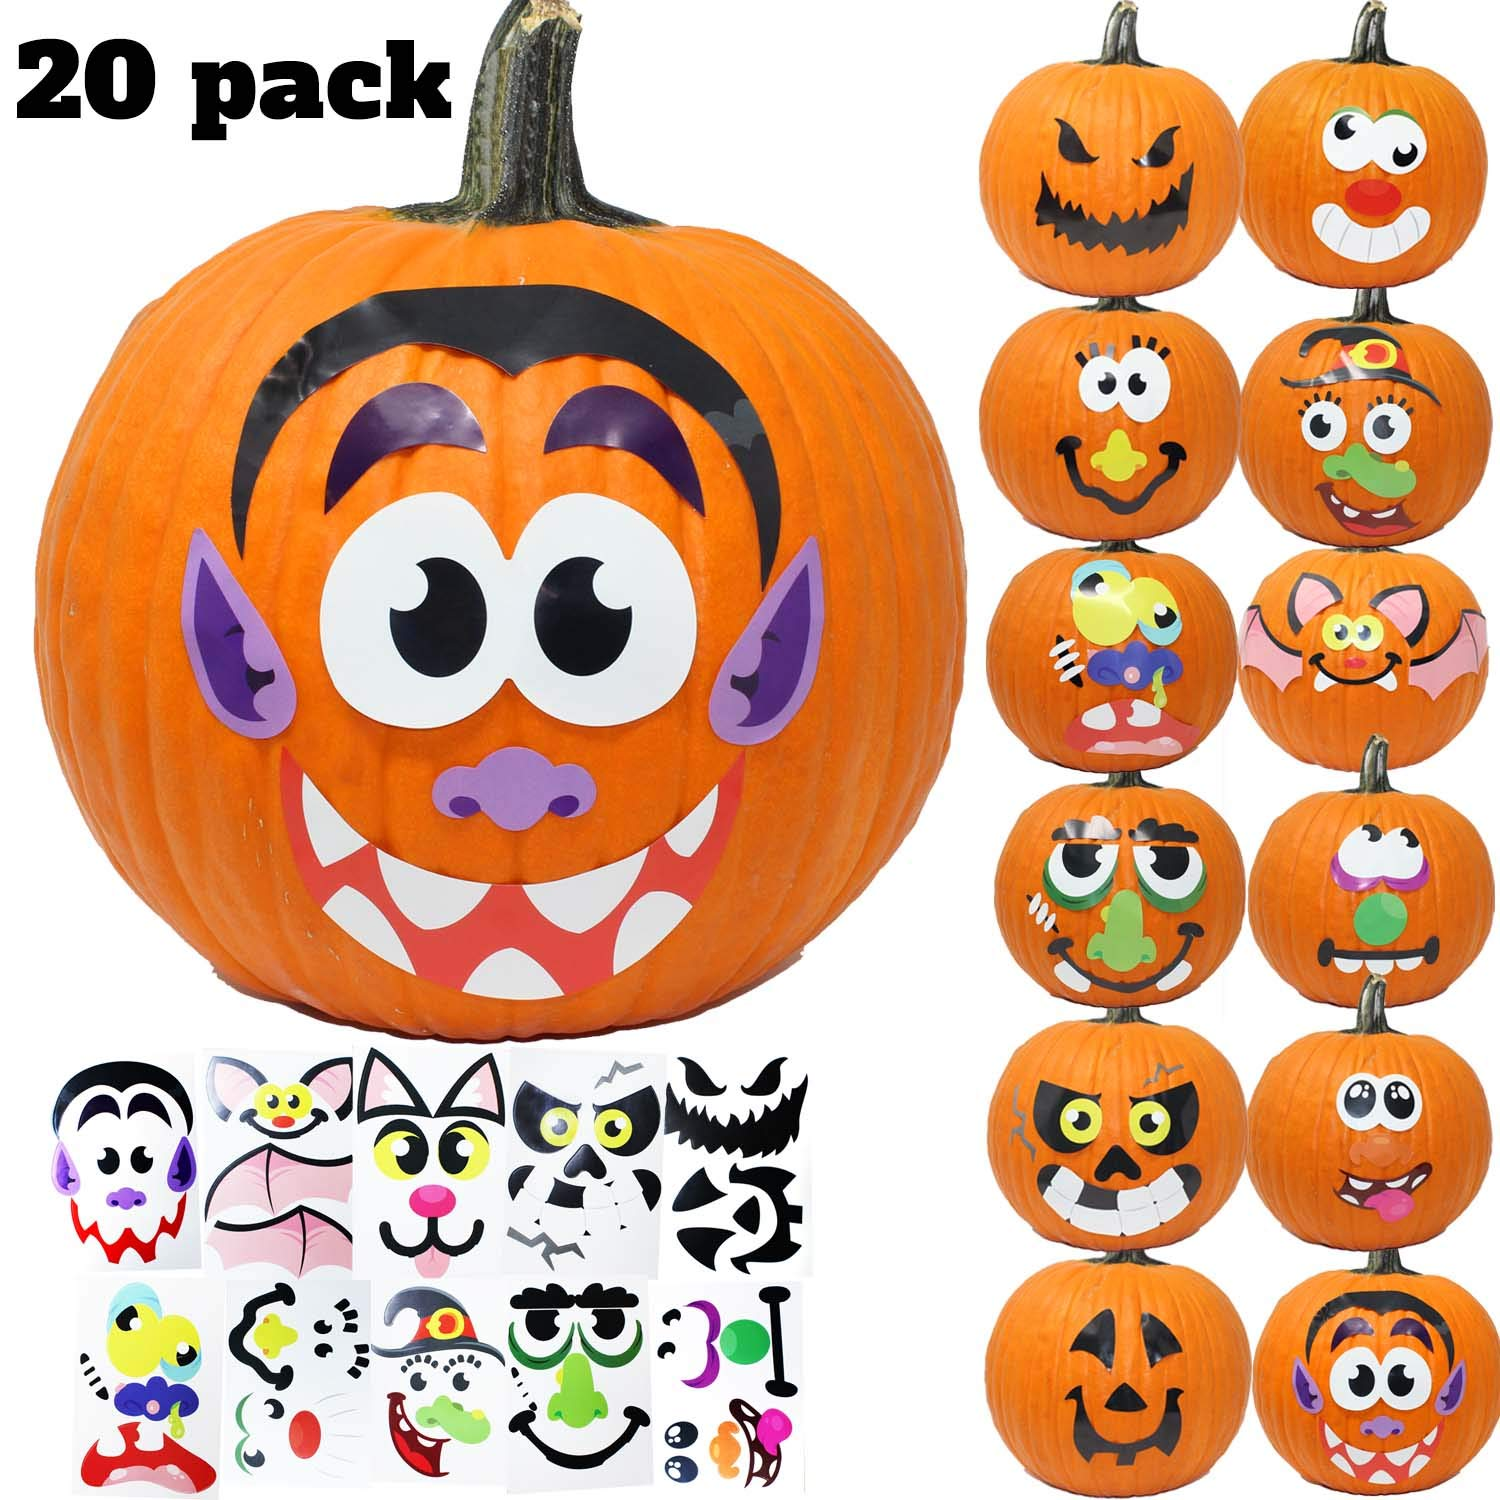 Pumpkin Decoration Stickers, 20-Pack